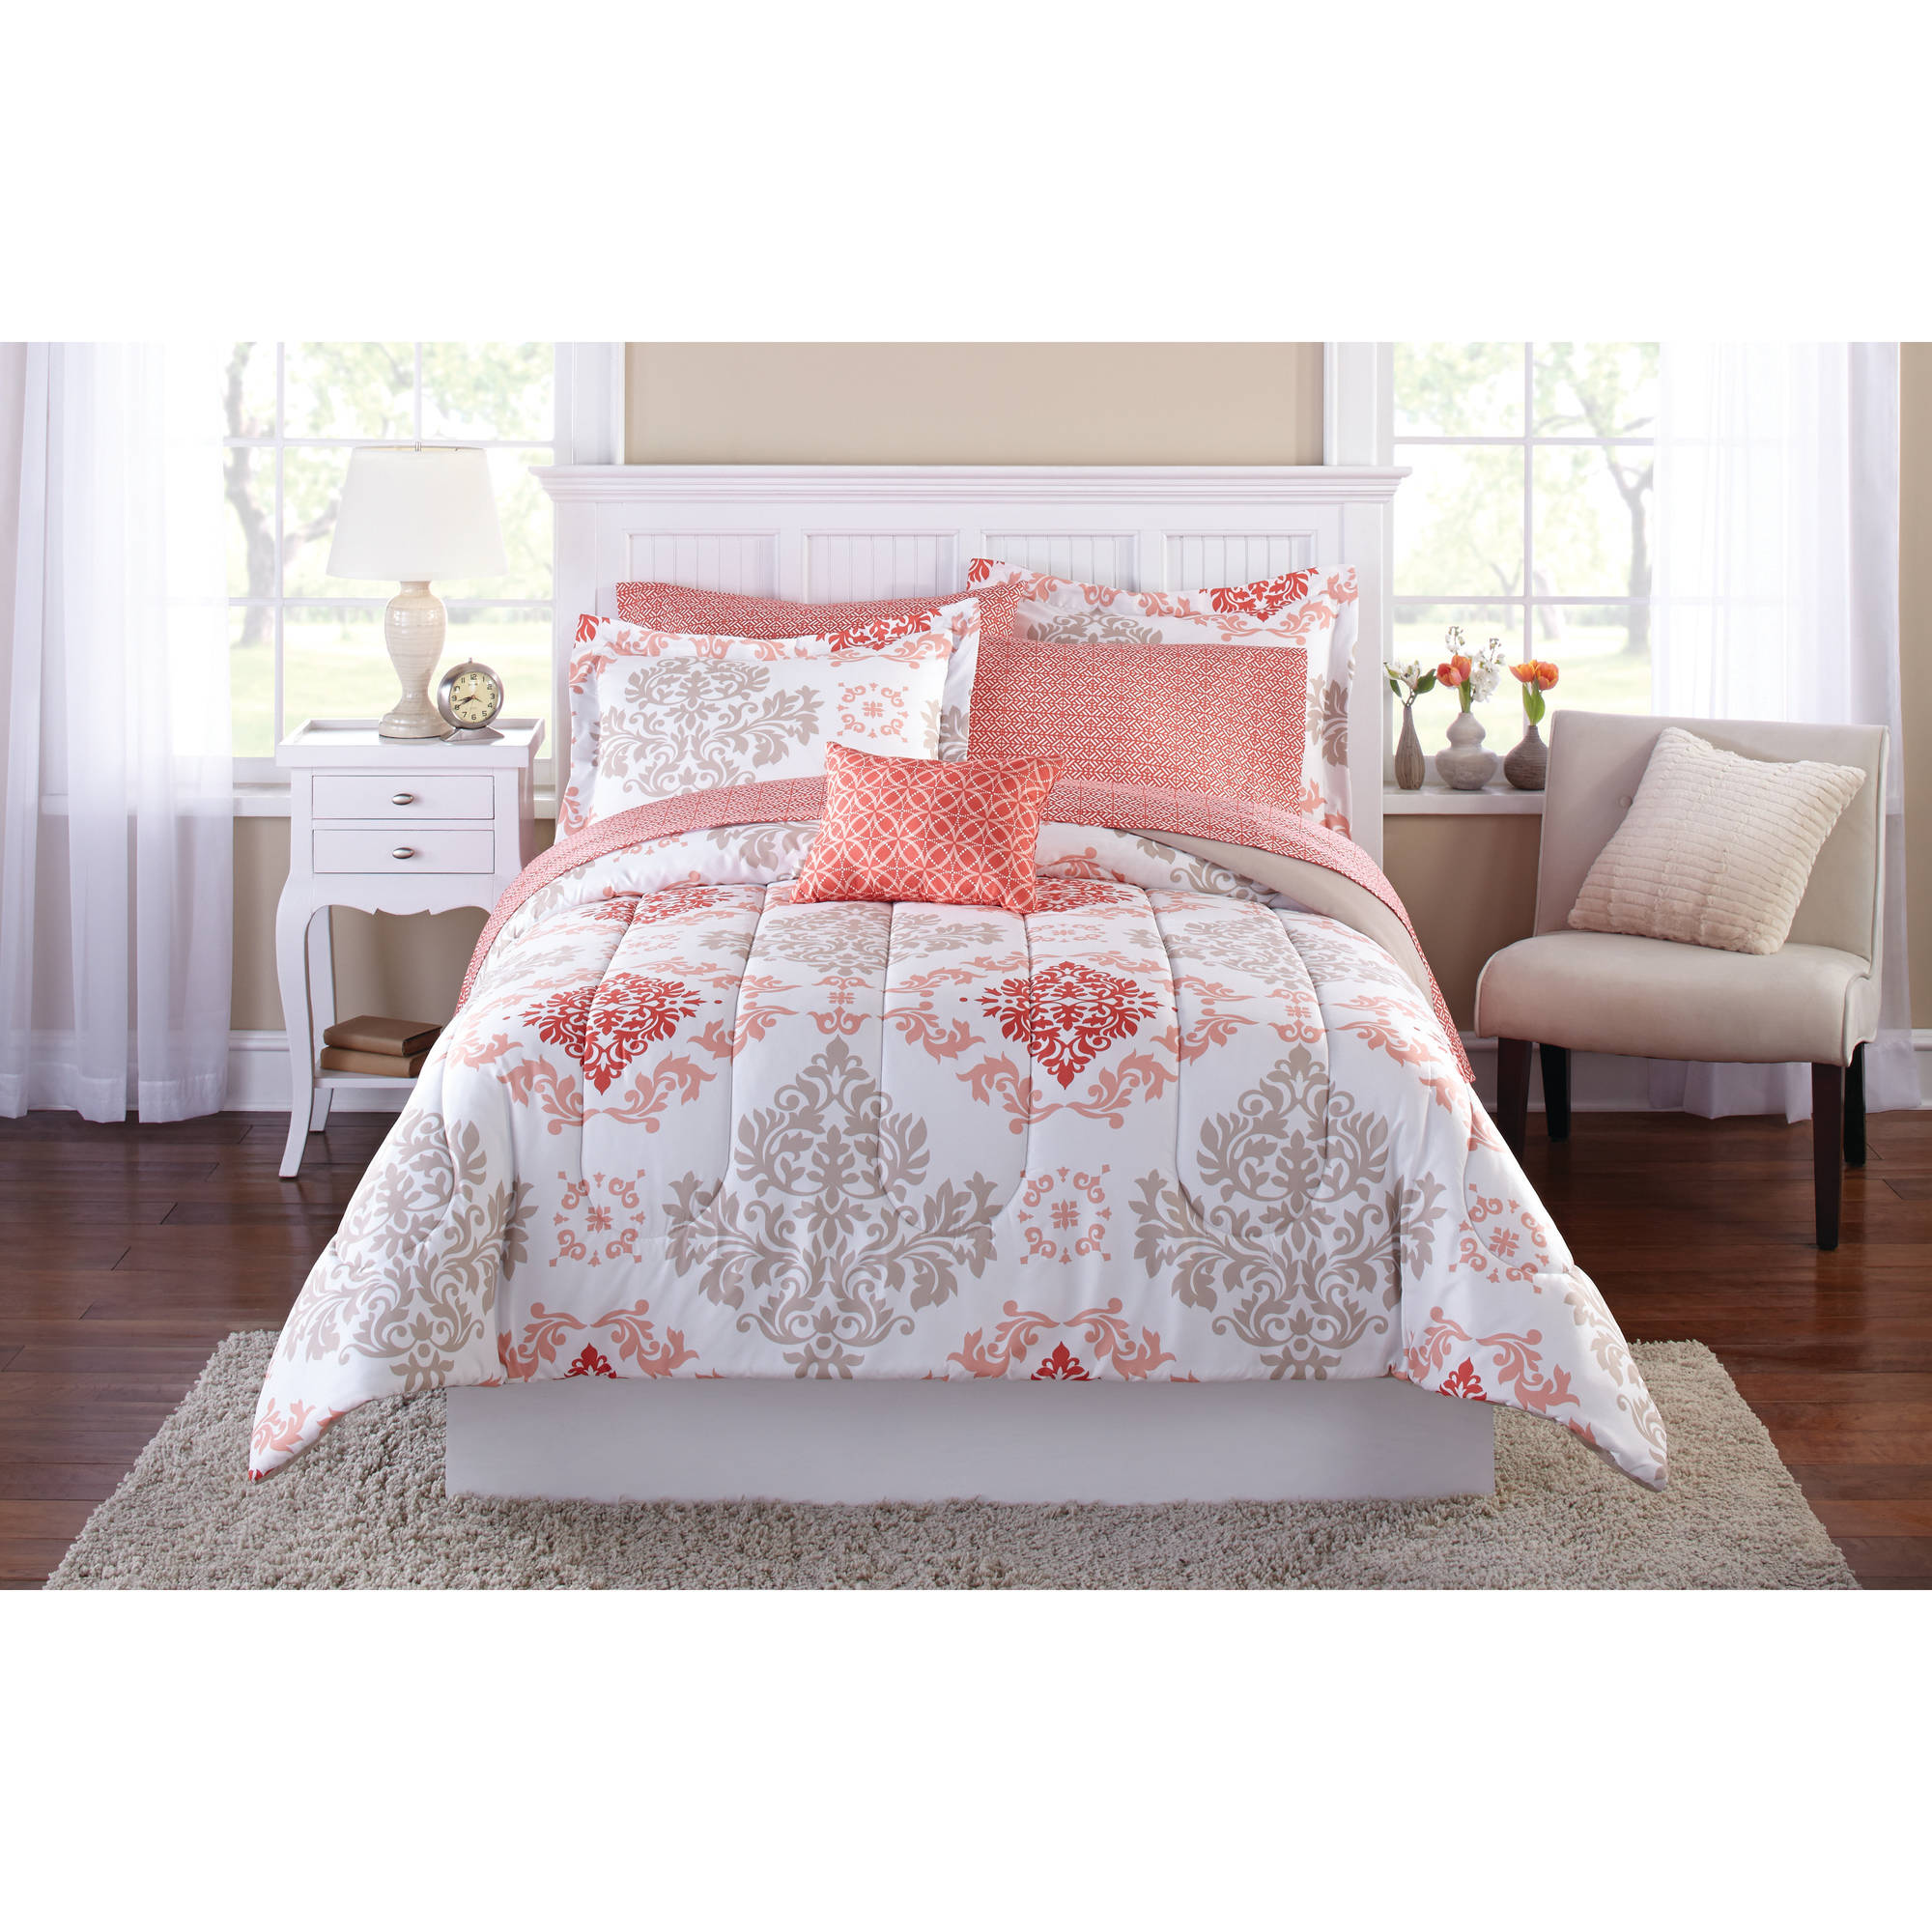 Bedroom gorgeous queen bedding sets for bedroom for Bedroom quilt ideas